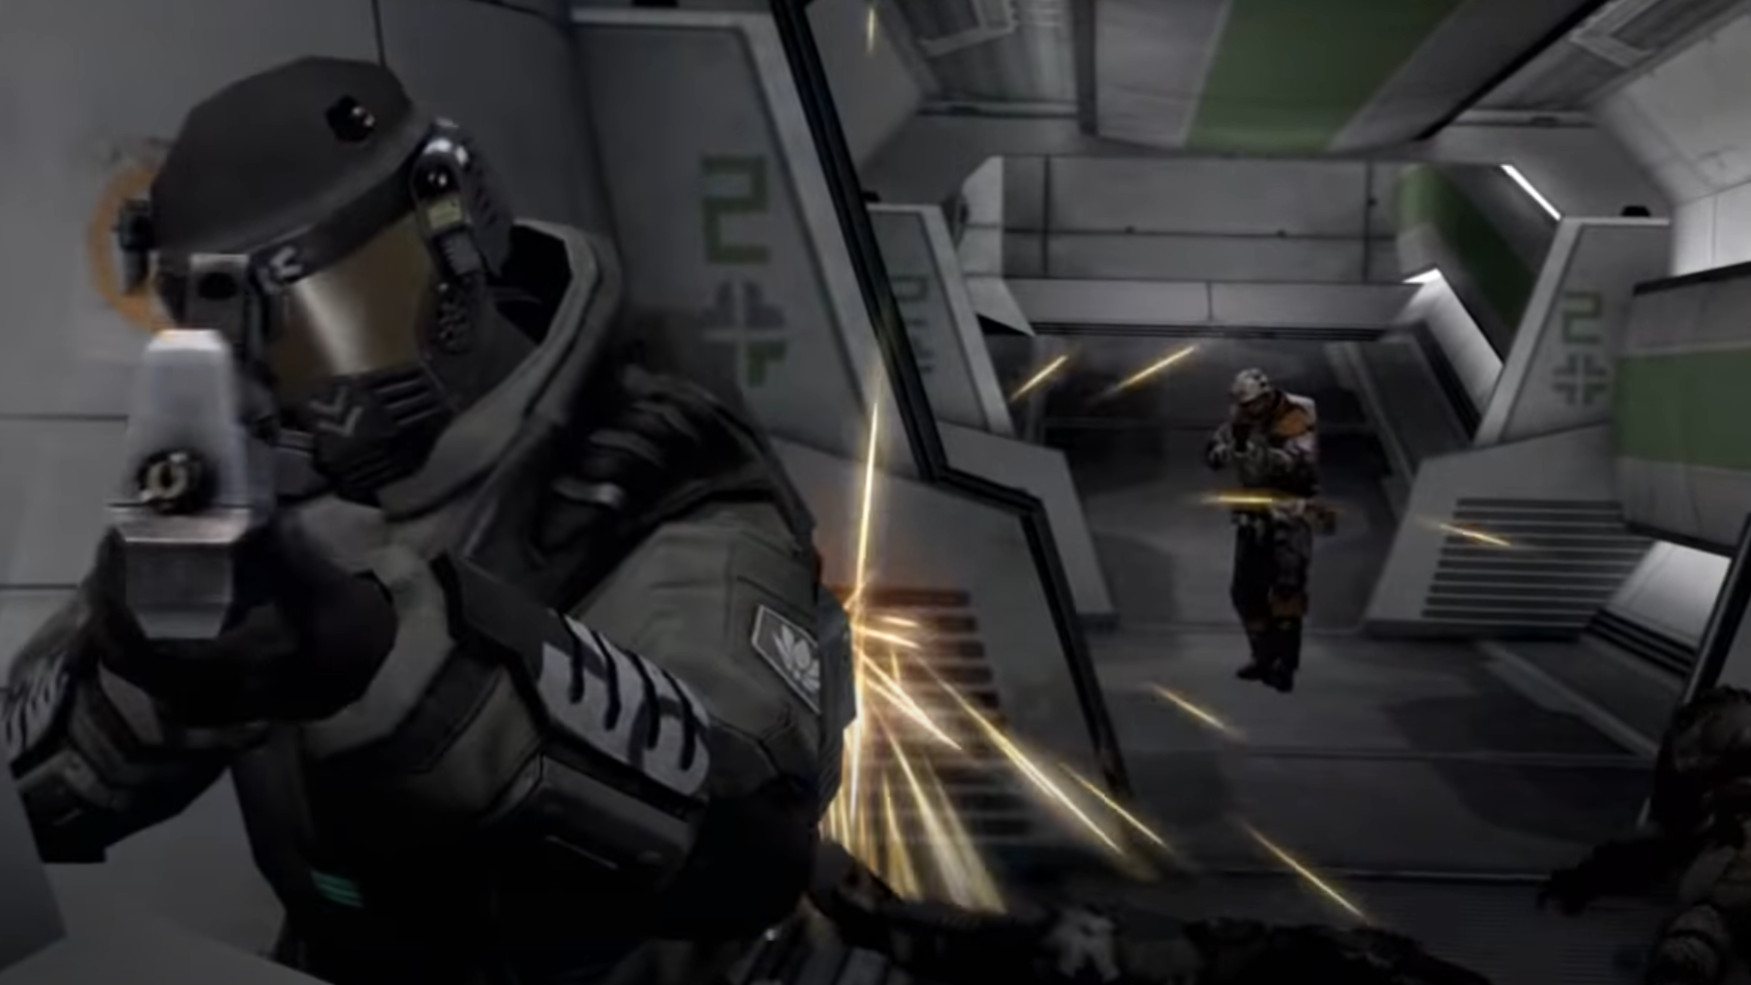 Soldiers shoot it out inside a sci-fi corridor